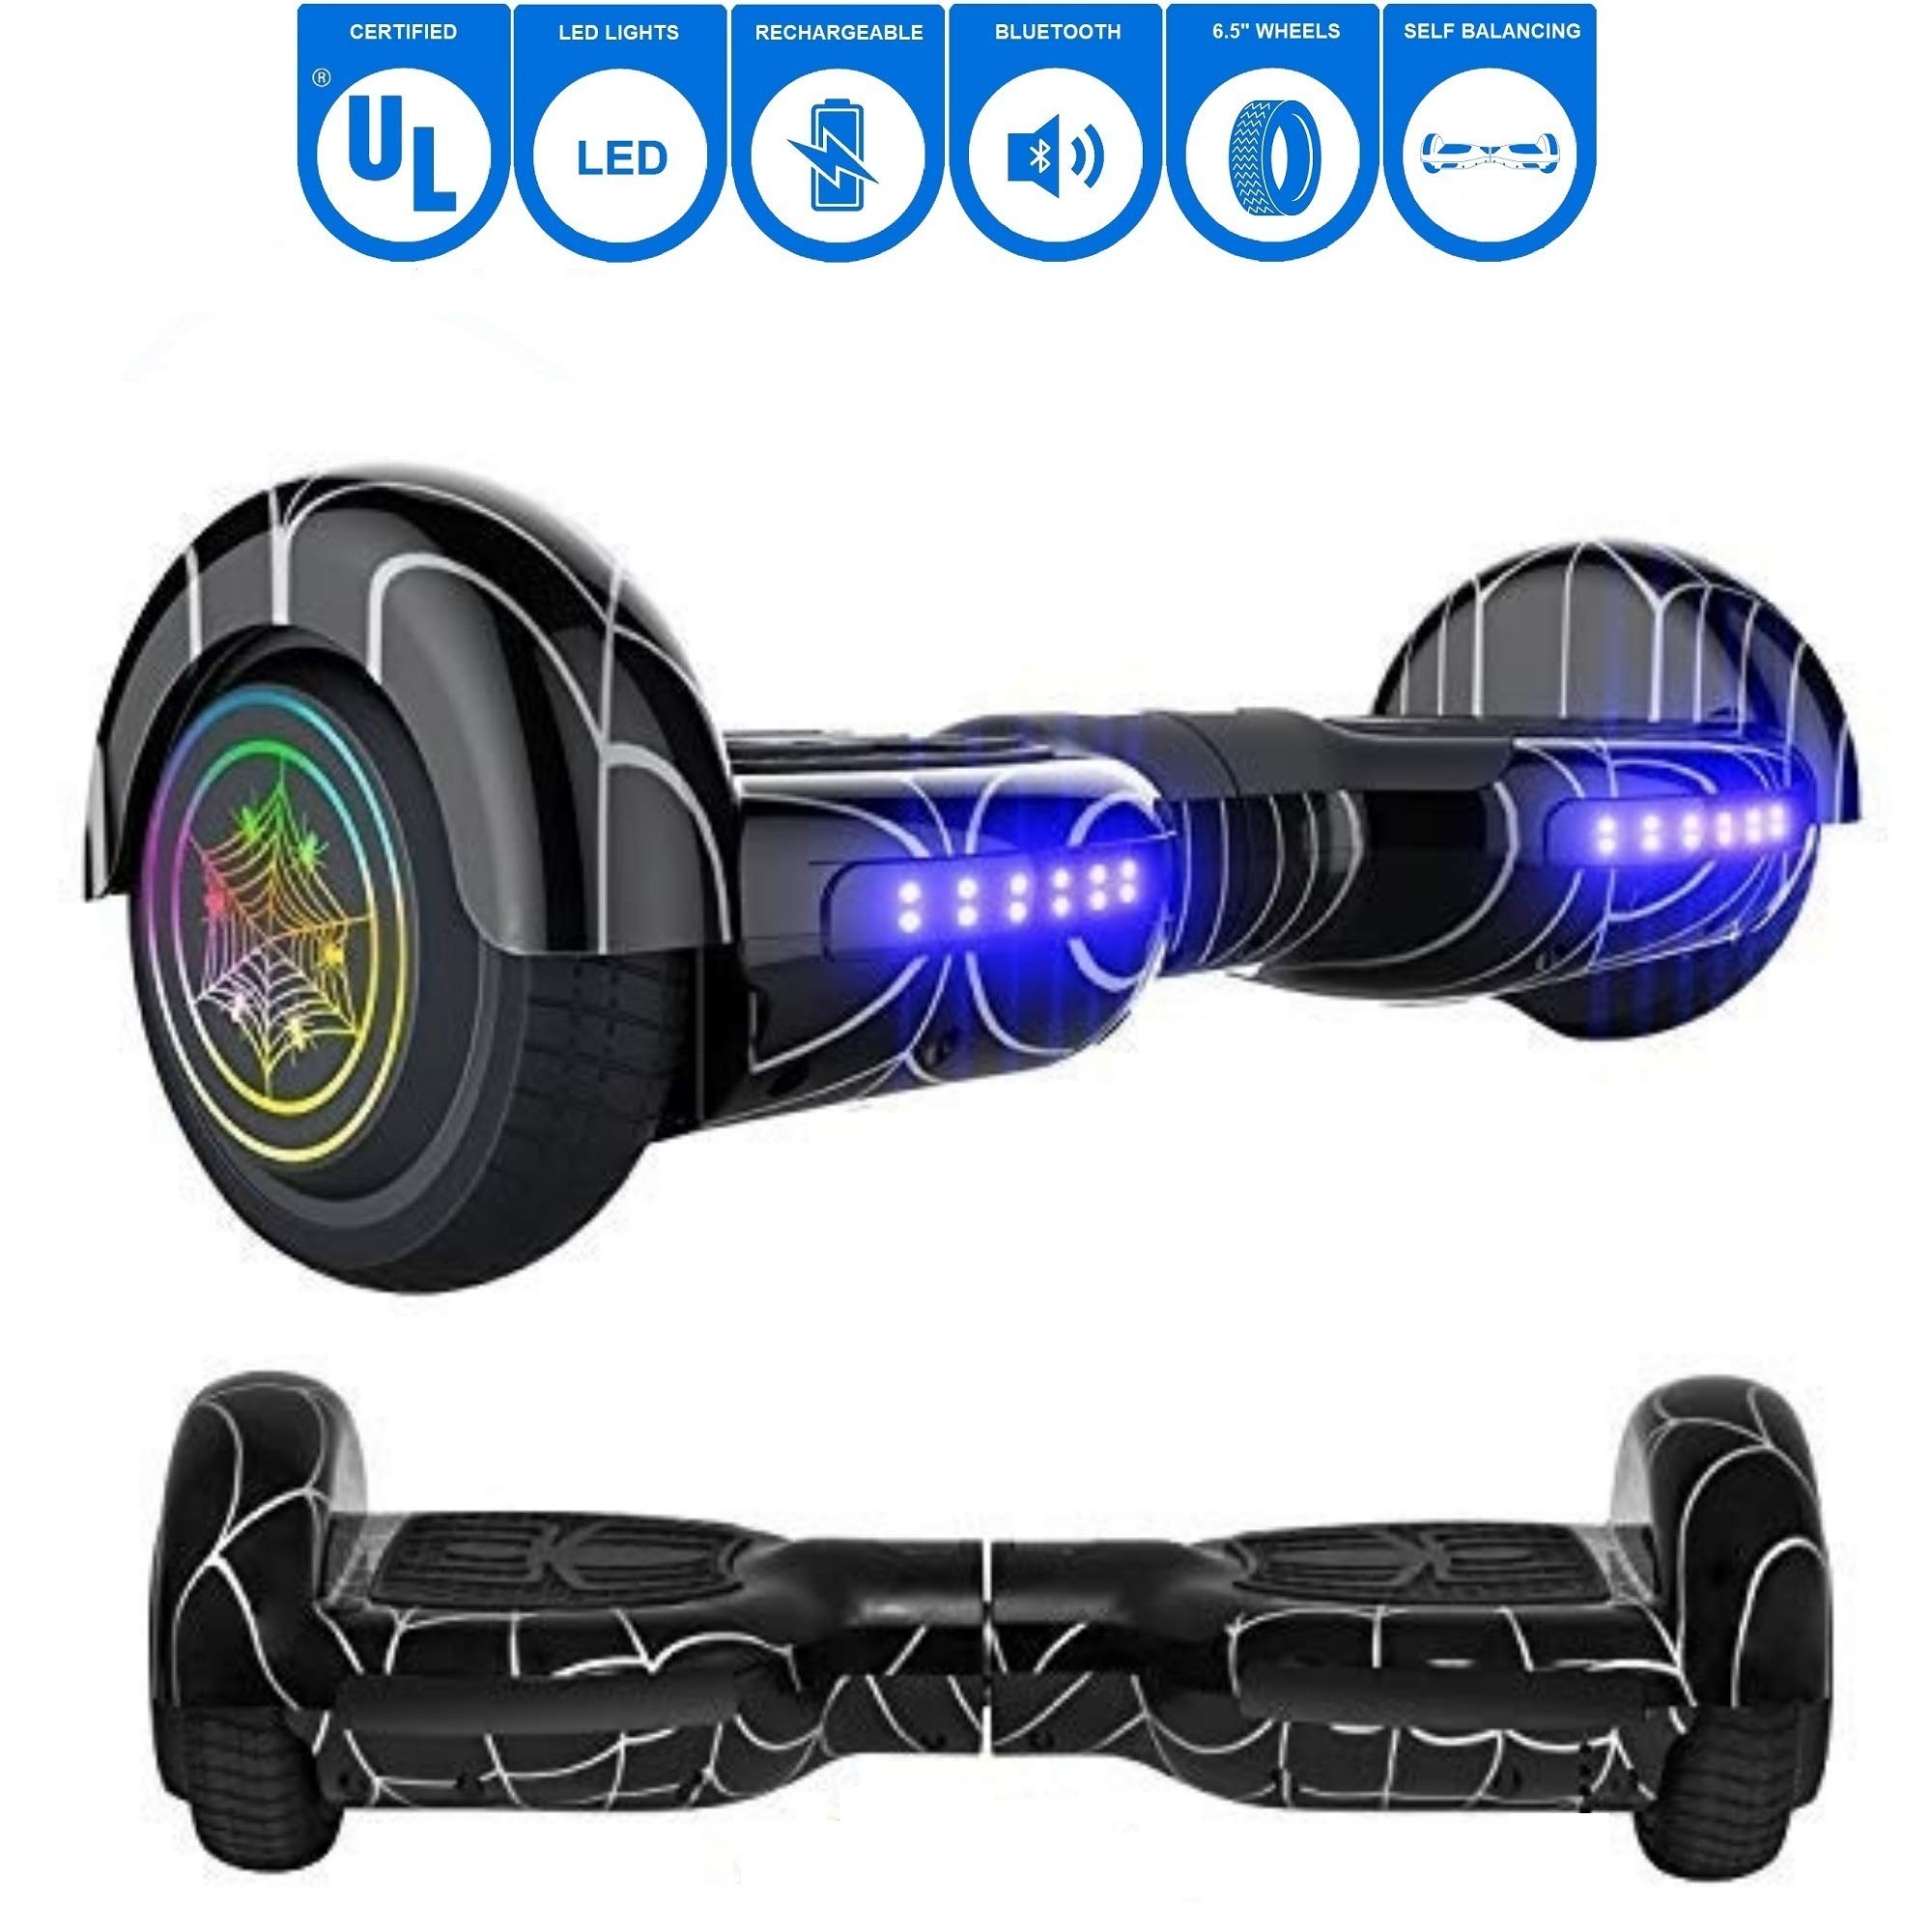 NHT 6.5'' inch Aurora Hoverboard Self Balancing Scooter with Colorful LED Wheels and Lights - UL2272 Certified Carbon Fiber/Spider/Built-in Bluetooth Speaker Available (Spider Black)